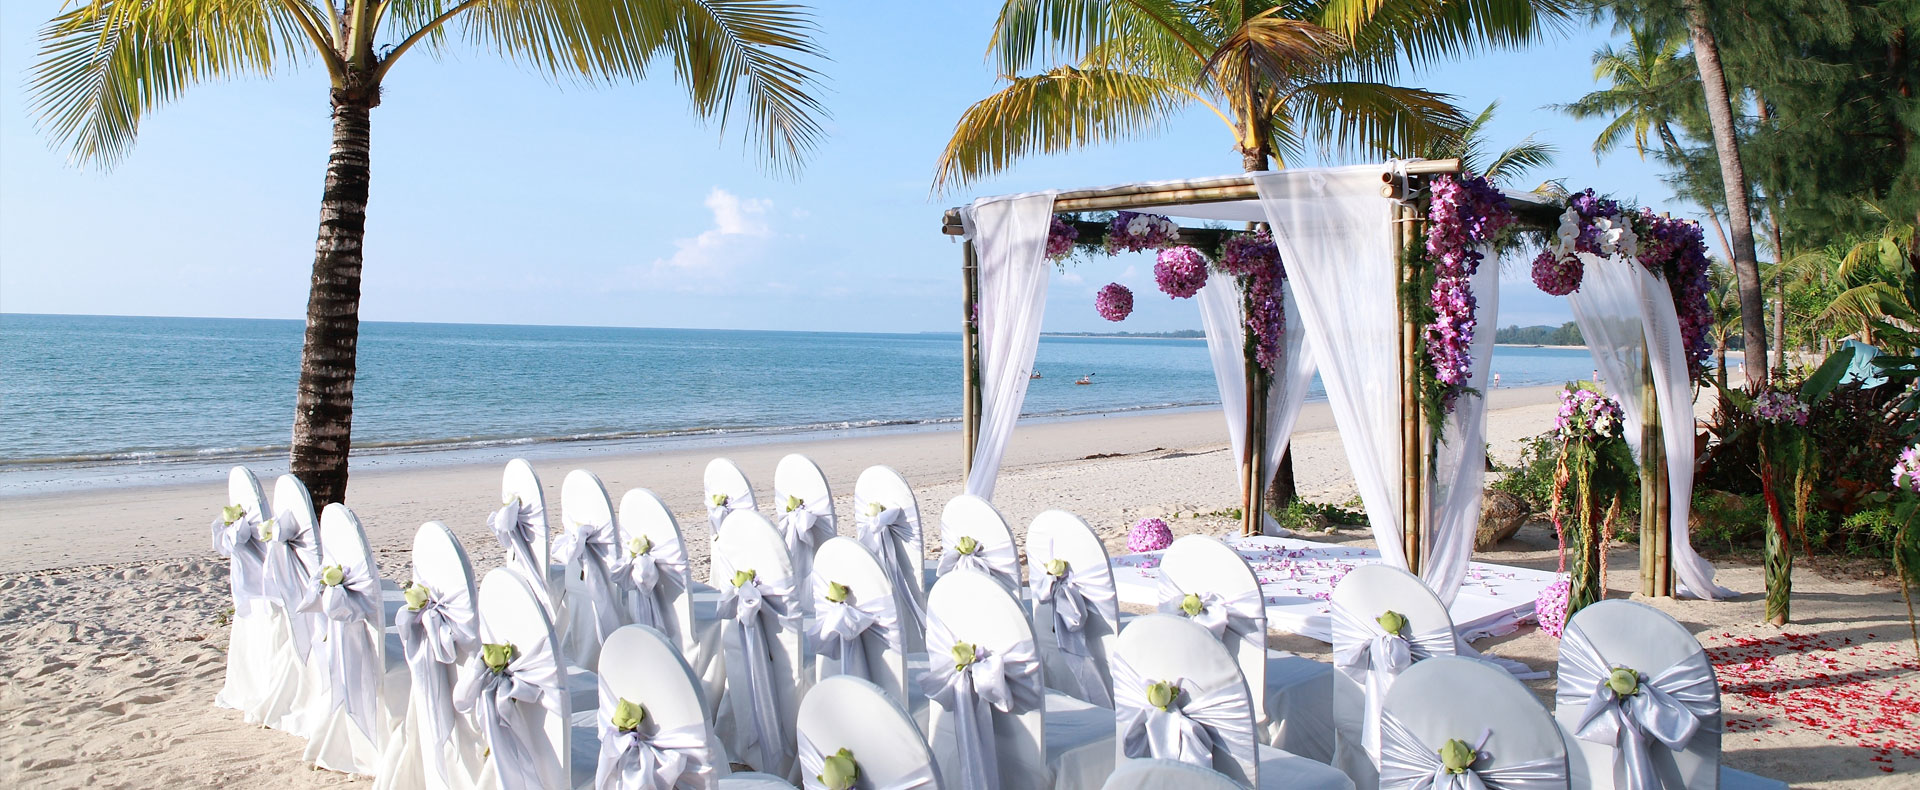 """<div style=""""text-align: center;""""><strong>Wedding Survey for Marbella and the Costa del Sol 2016</strong></div>"""